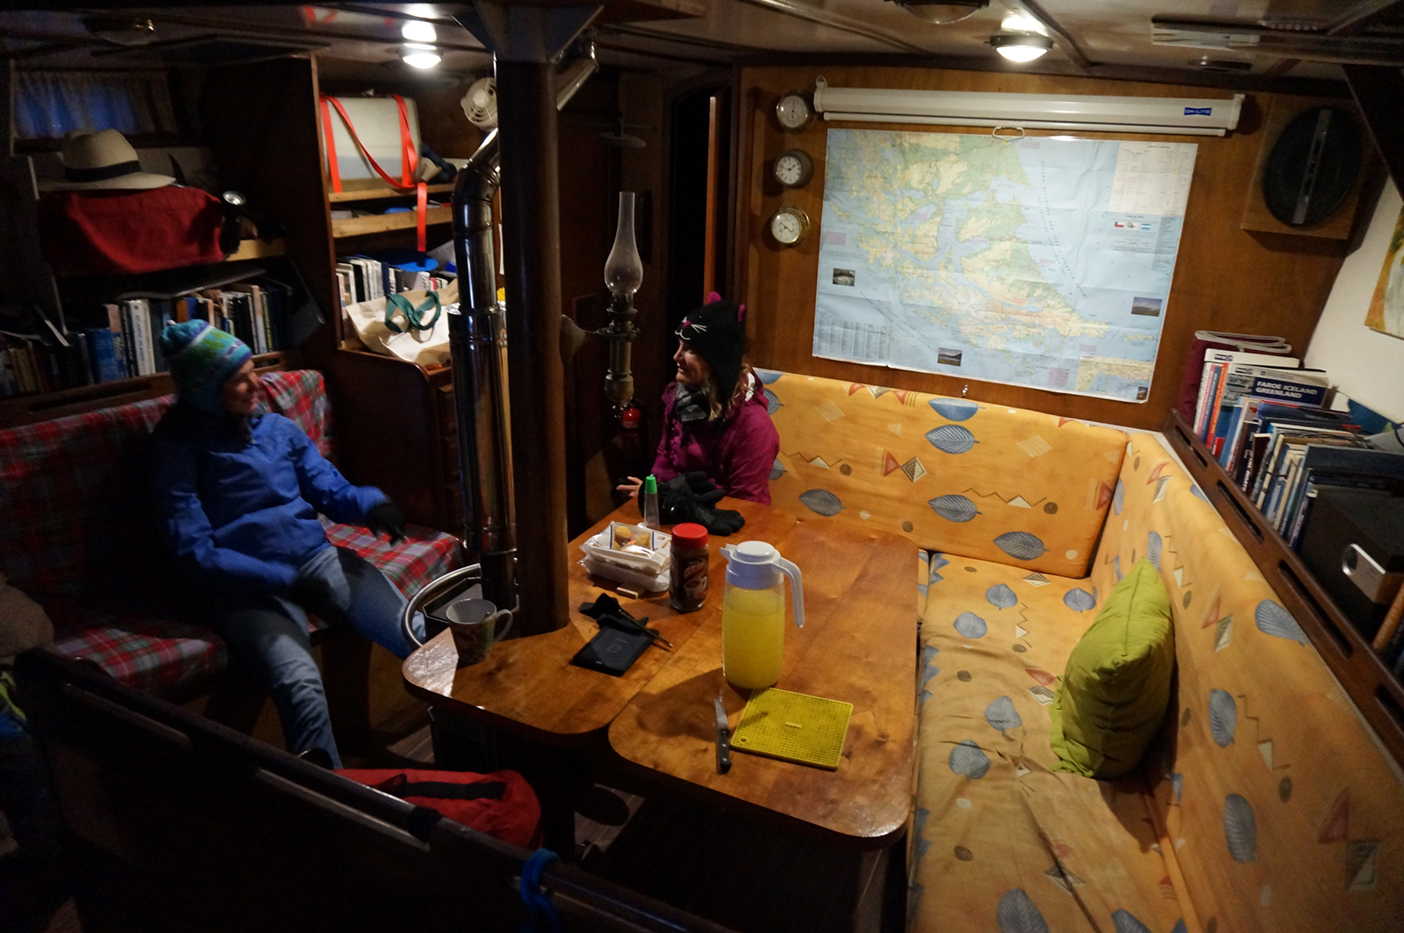 Waiting patiently in the ship's cabin.